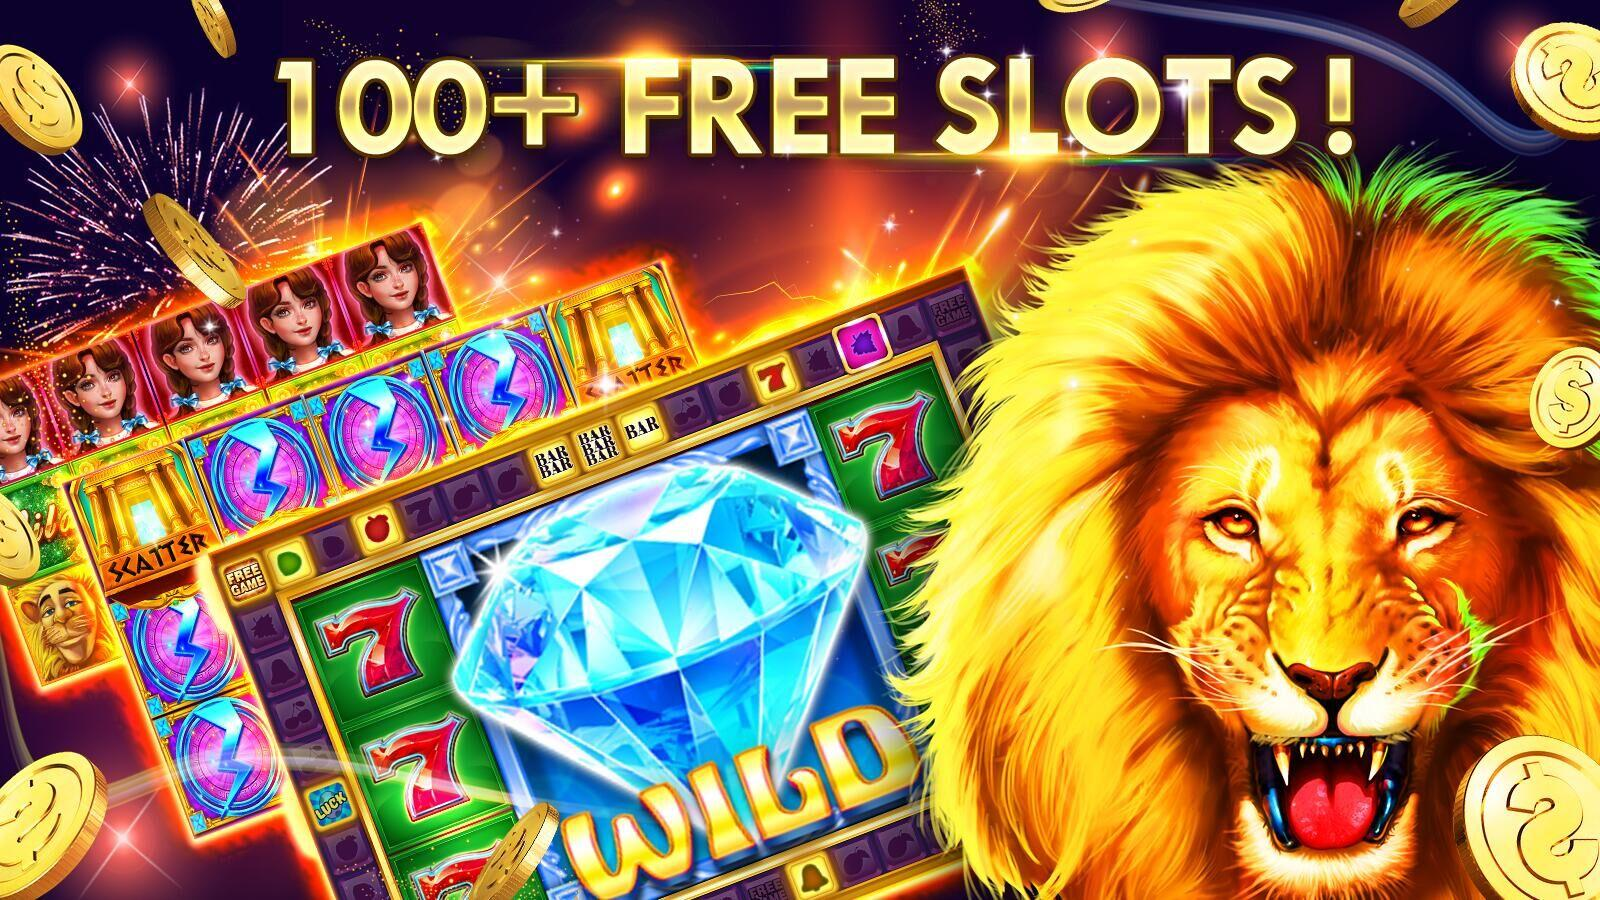 80 Day Adventure Slots - Find Out Where to Play Online